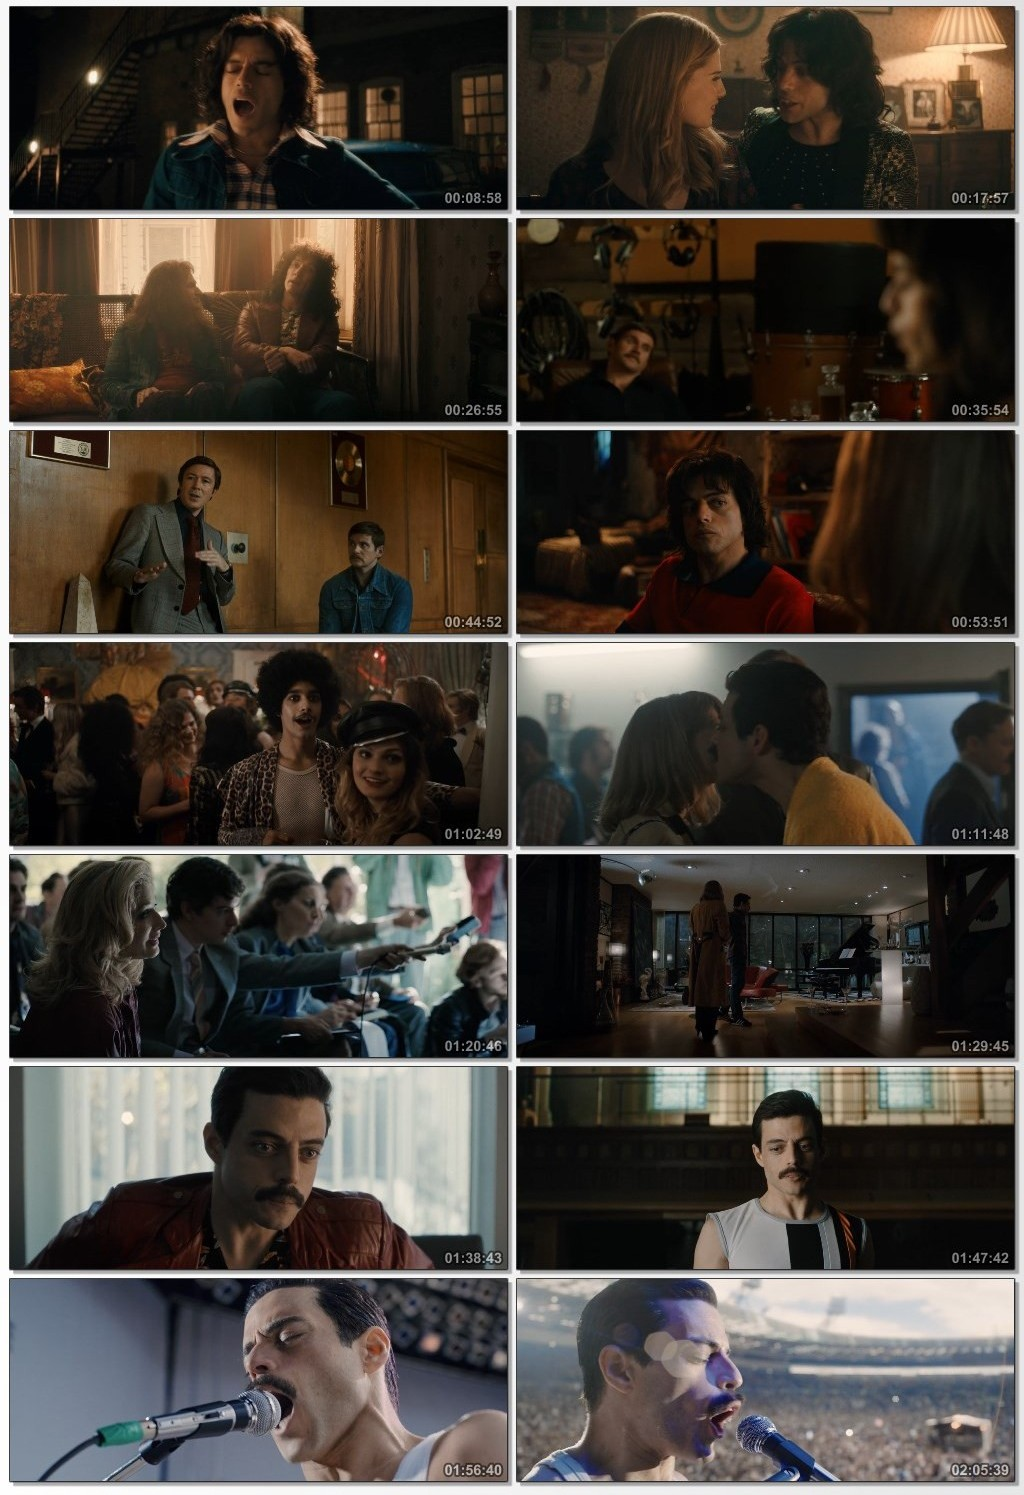 the bohemian rhapsody movie download free, bohemian rhapsody movie download hd, bohemian rhapsody movie download 480p, bohemian rhapsody movie download 720p